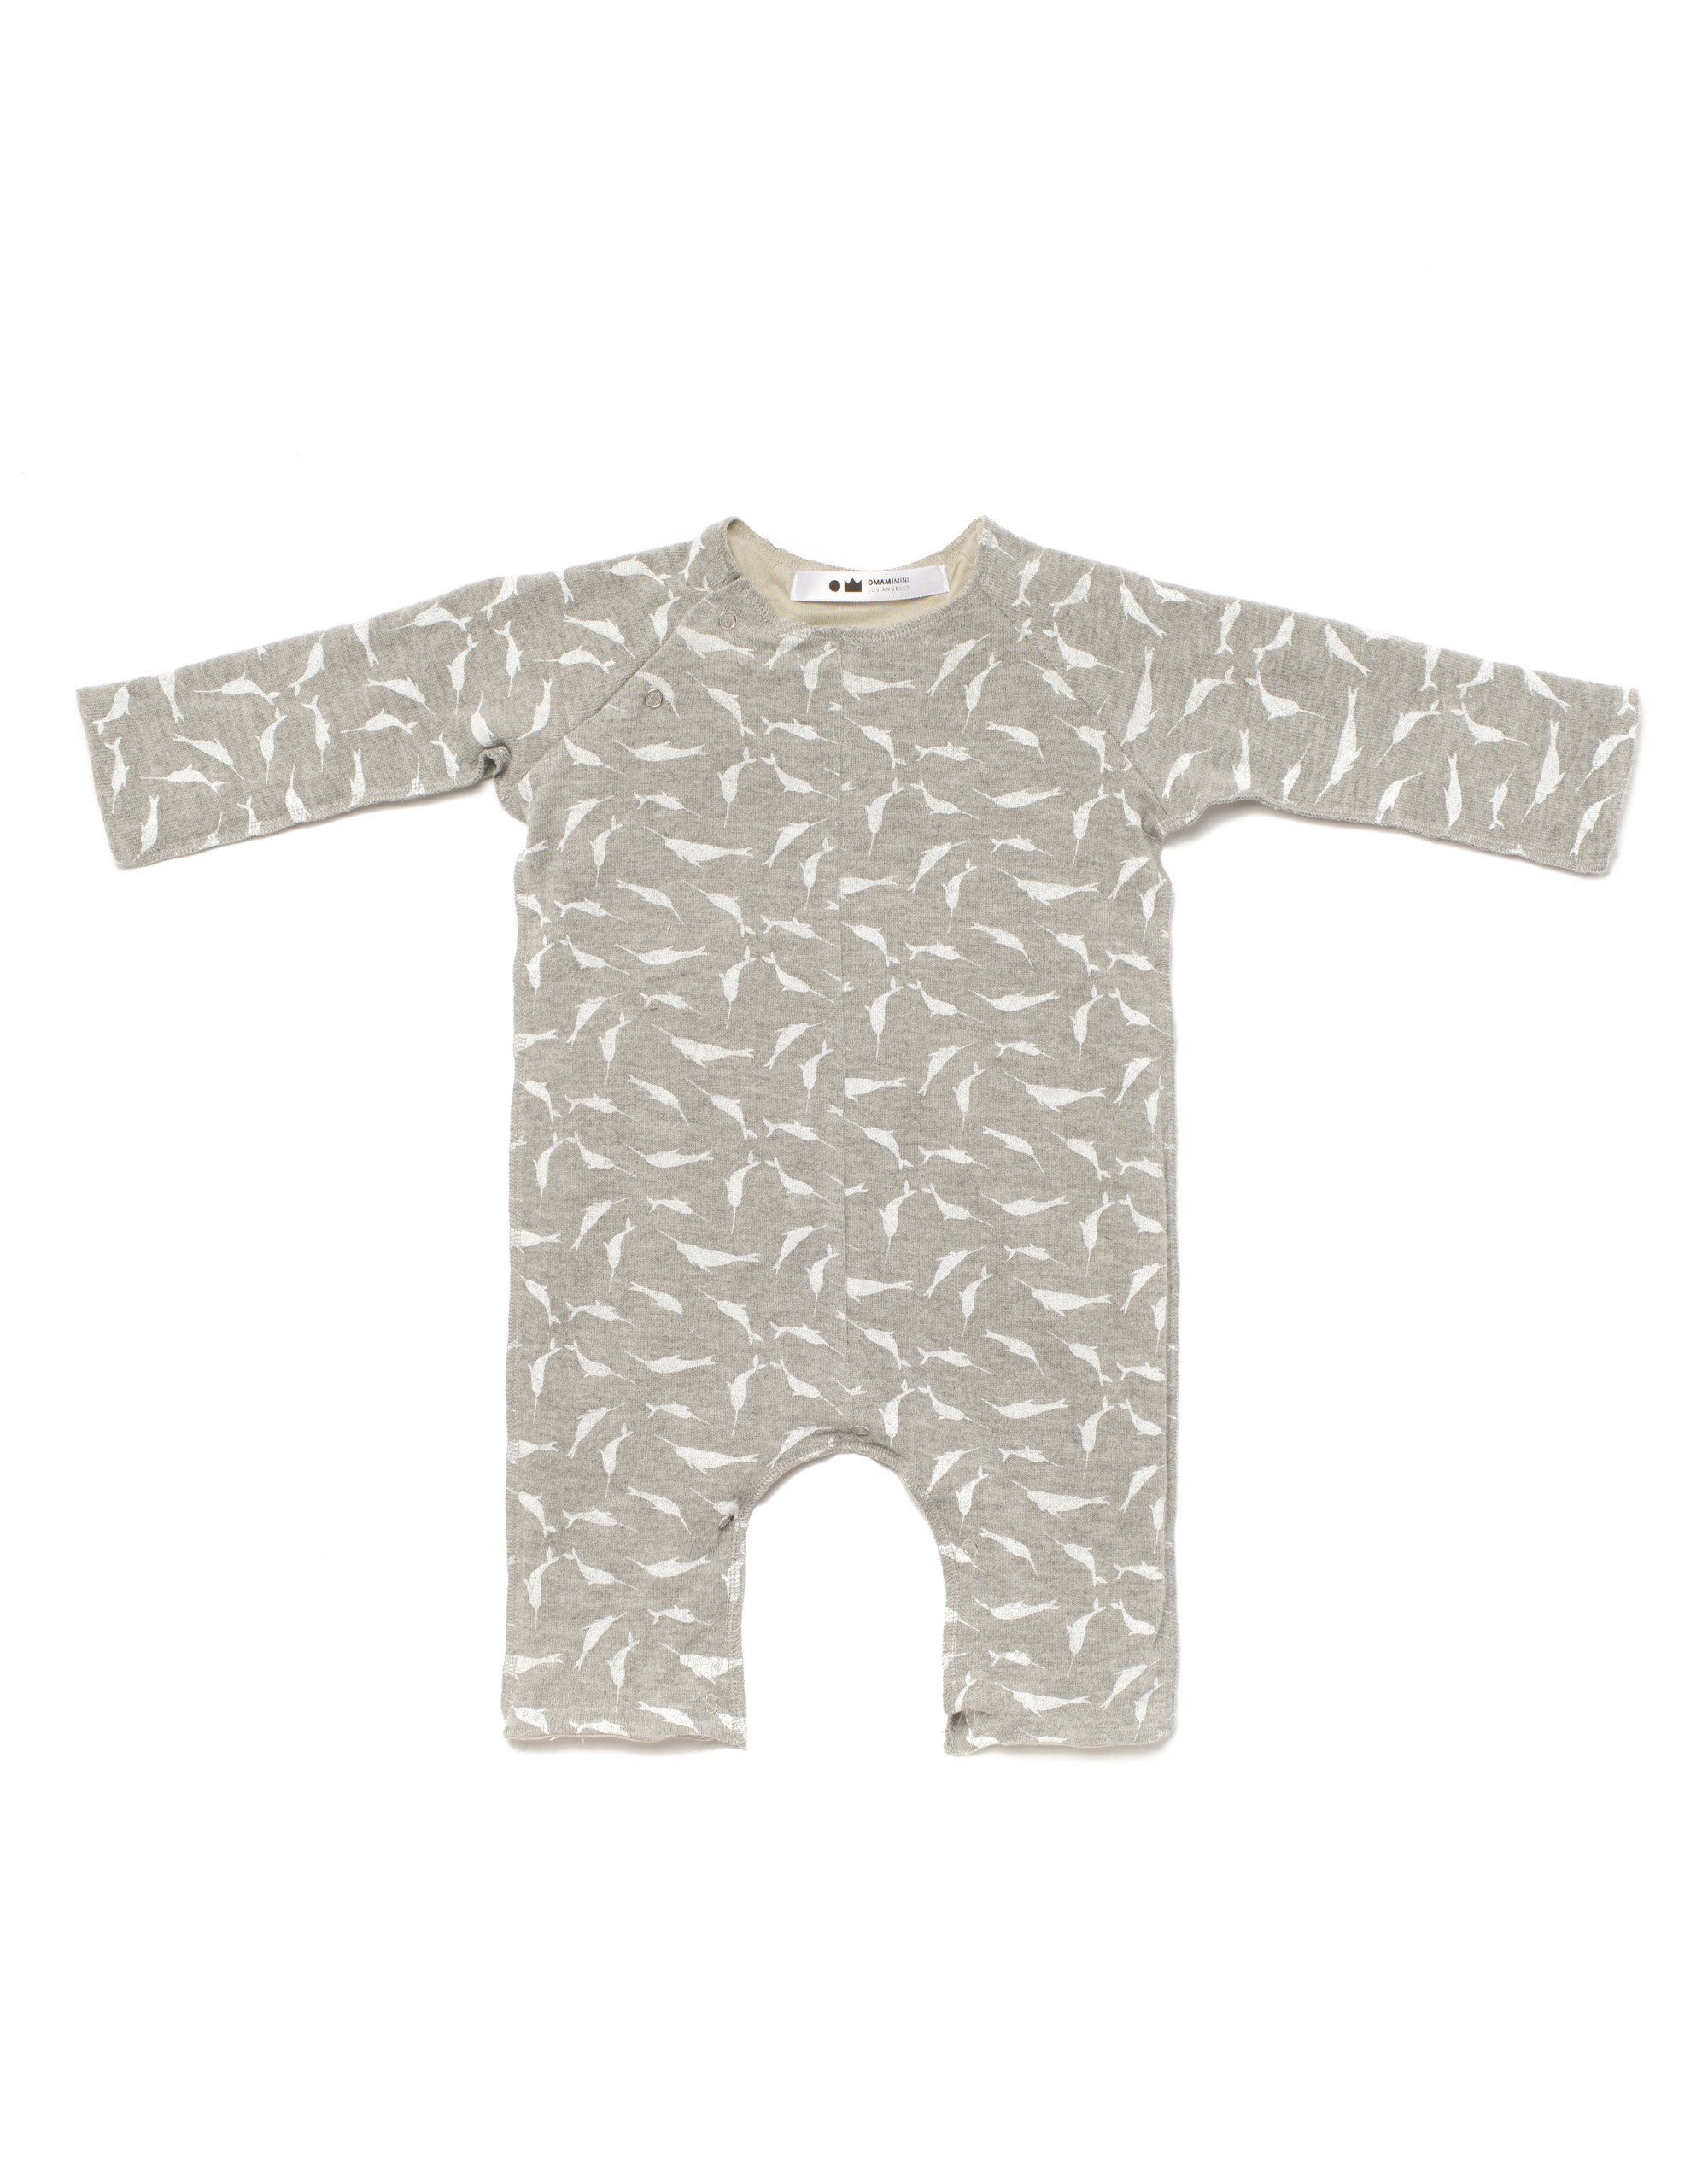 3989746d4 Baby Knit One-Piece with Small Narwhals Print